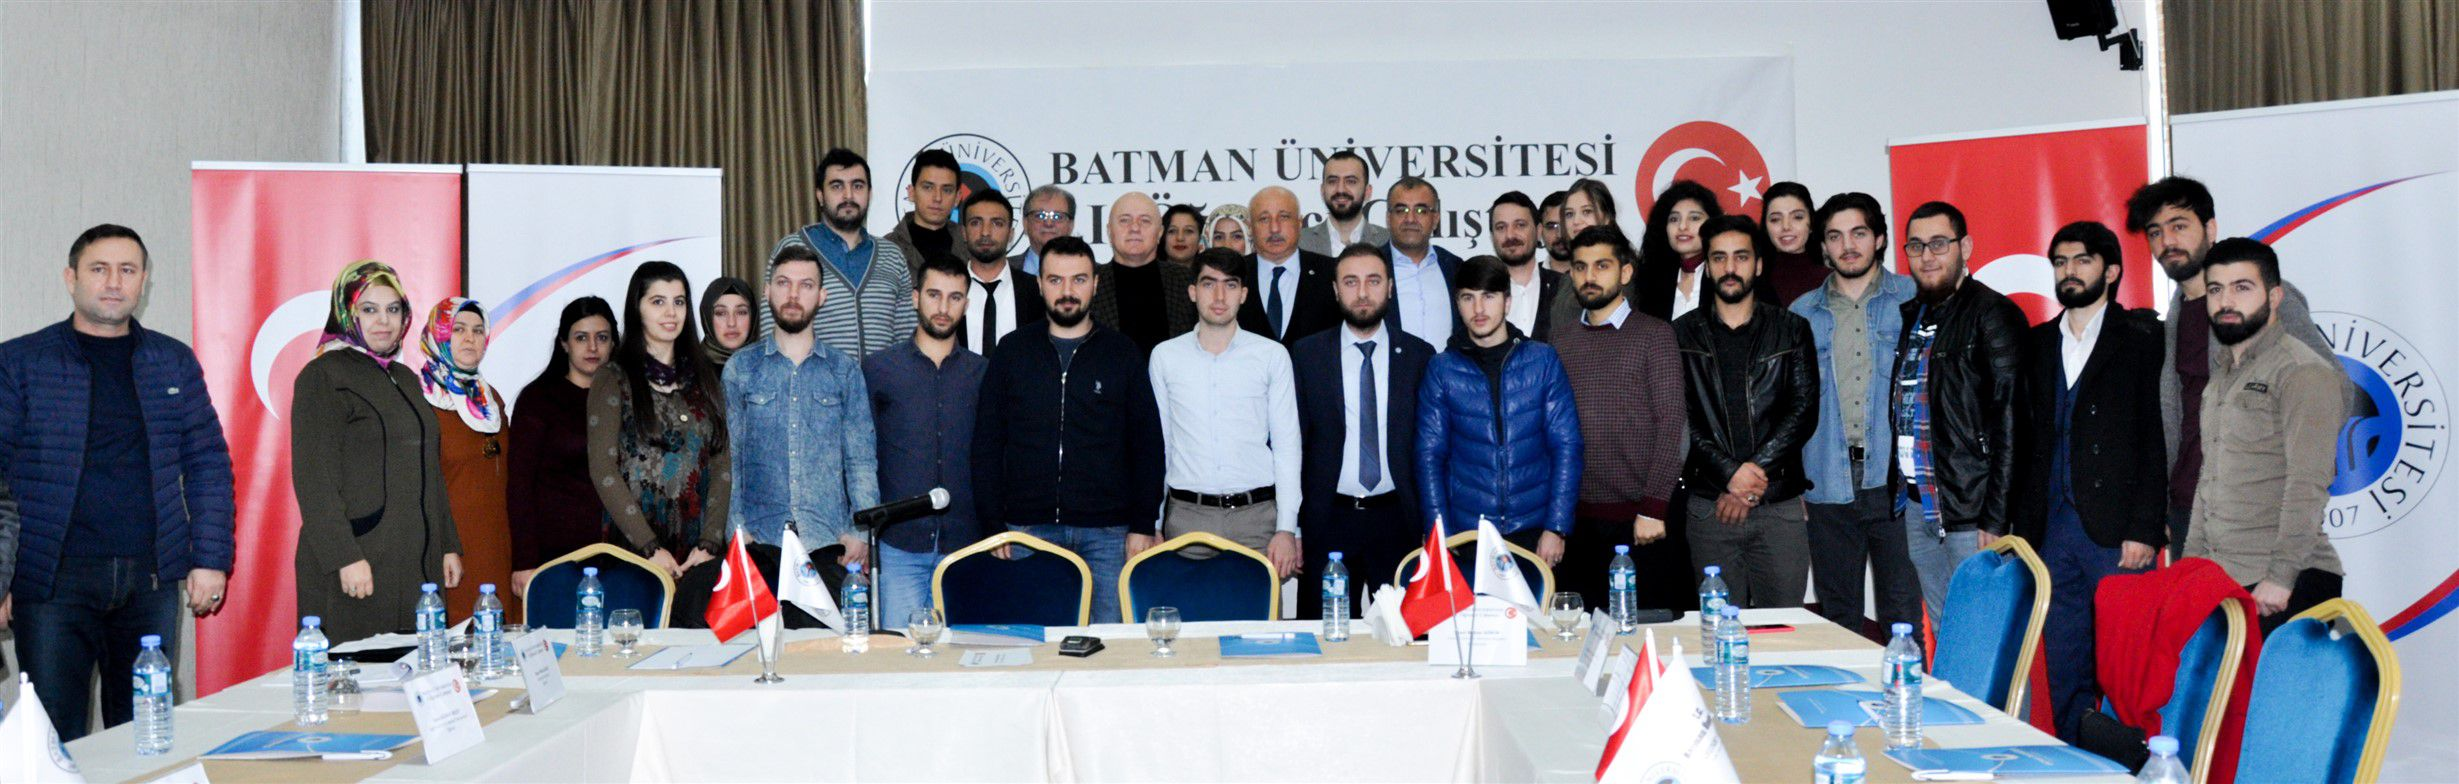 batman-universitesi-i.-ogrenci-calistayi-003.jpg